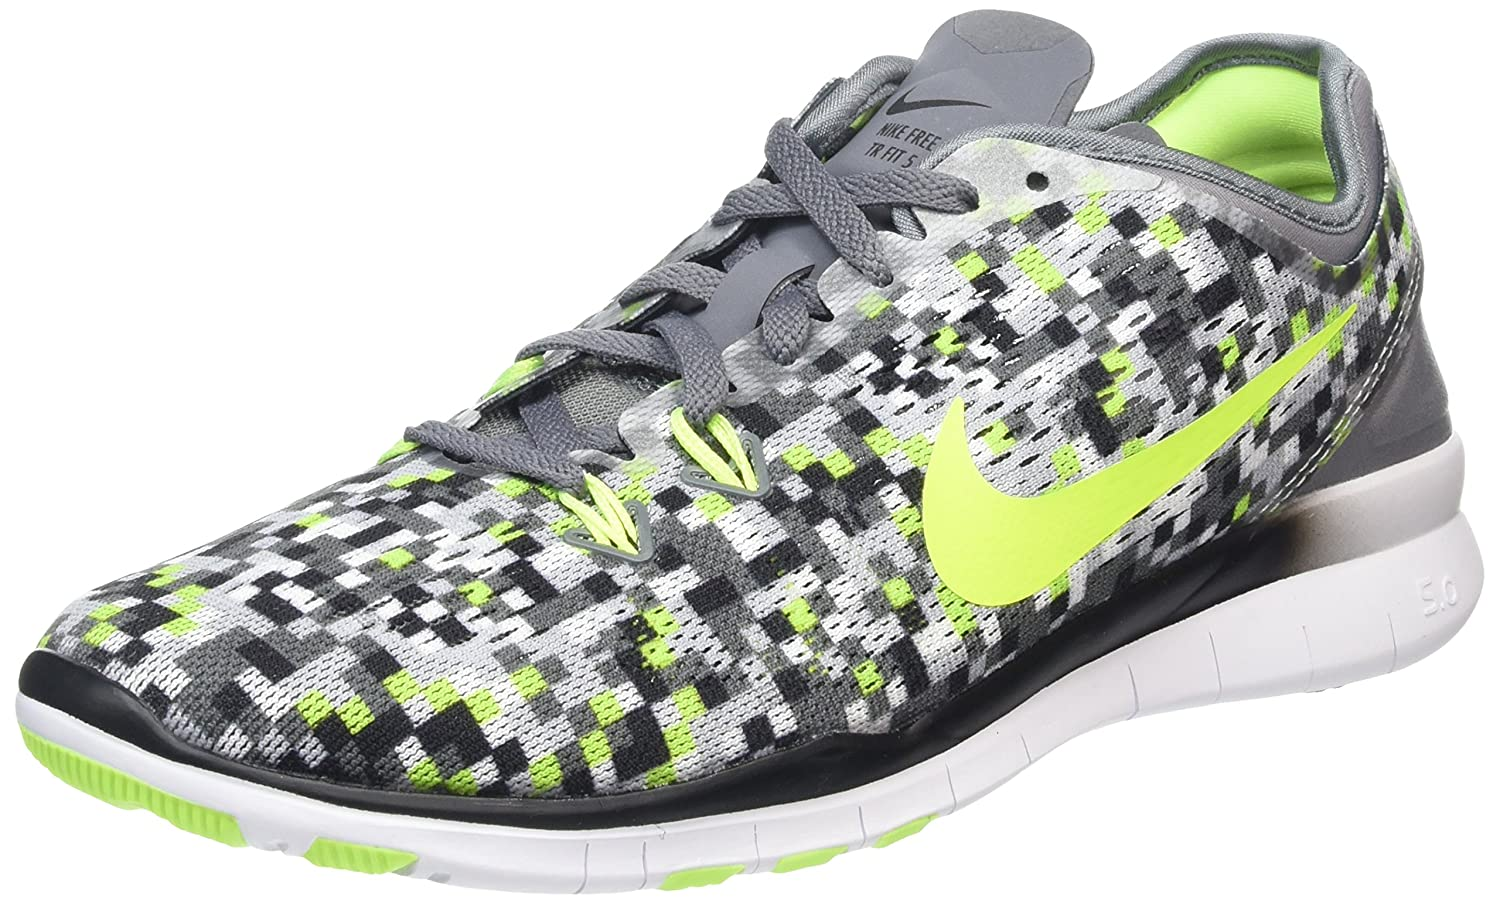 great deals 2017 release date clearance prices Buy Nike Women's Free 5.0 Tr Fit 5 PRT Cool Grey/Black/Volt ...